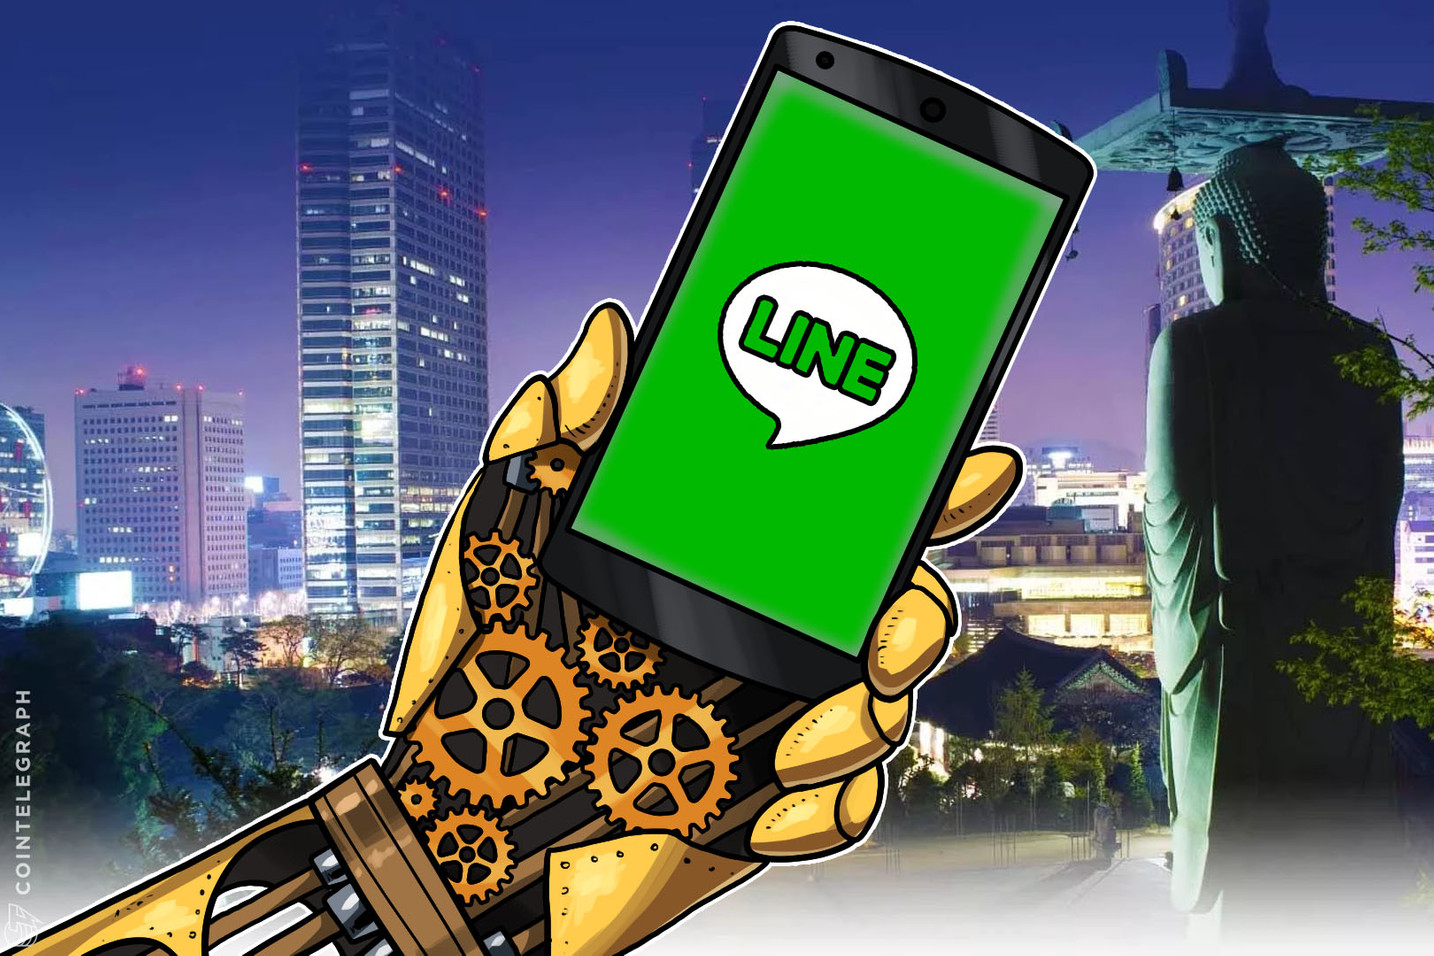 Tokyo-Based Chat Giant Line Launches Blockchain Affiliate in South Korea